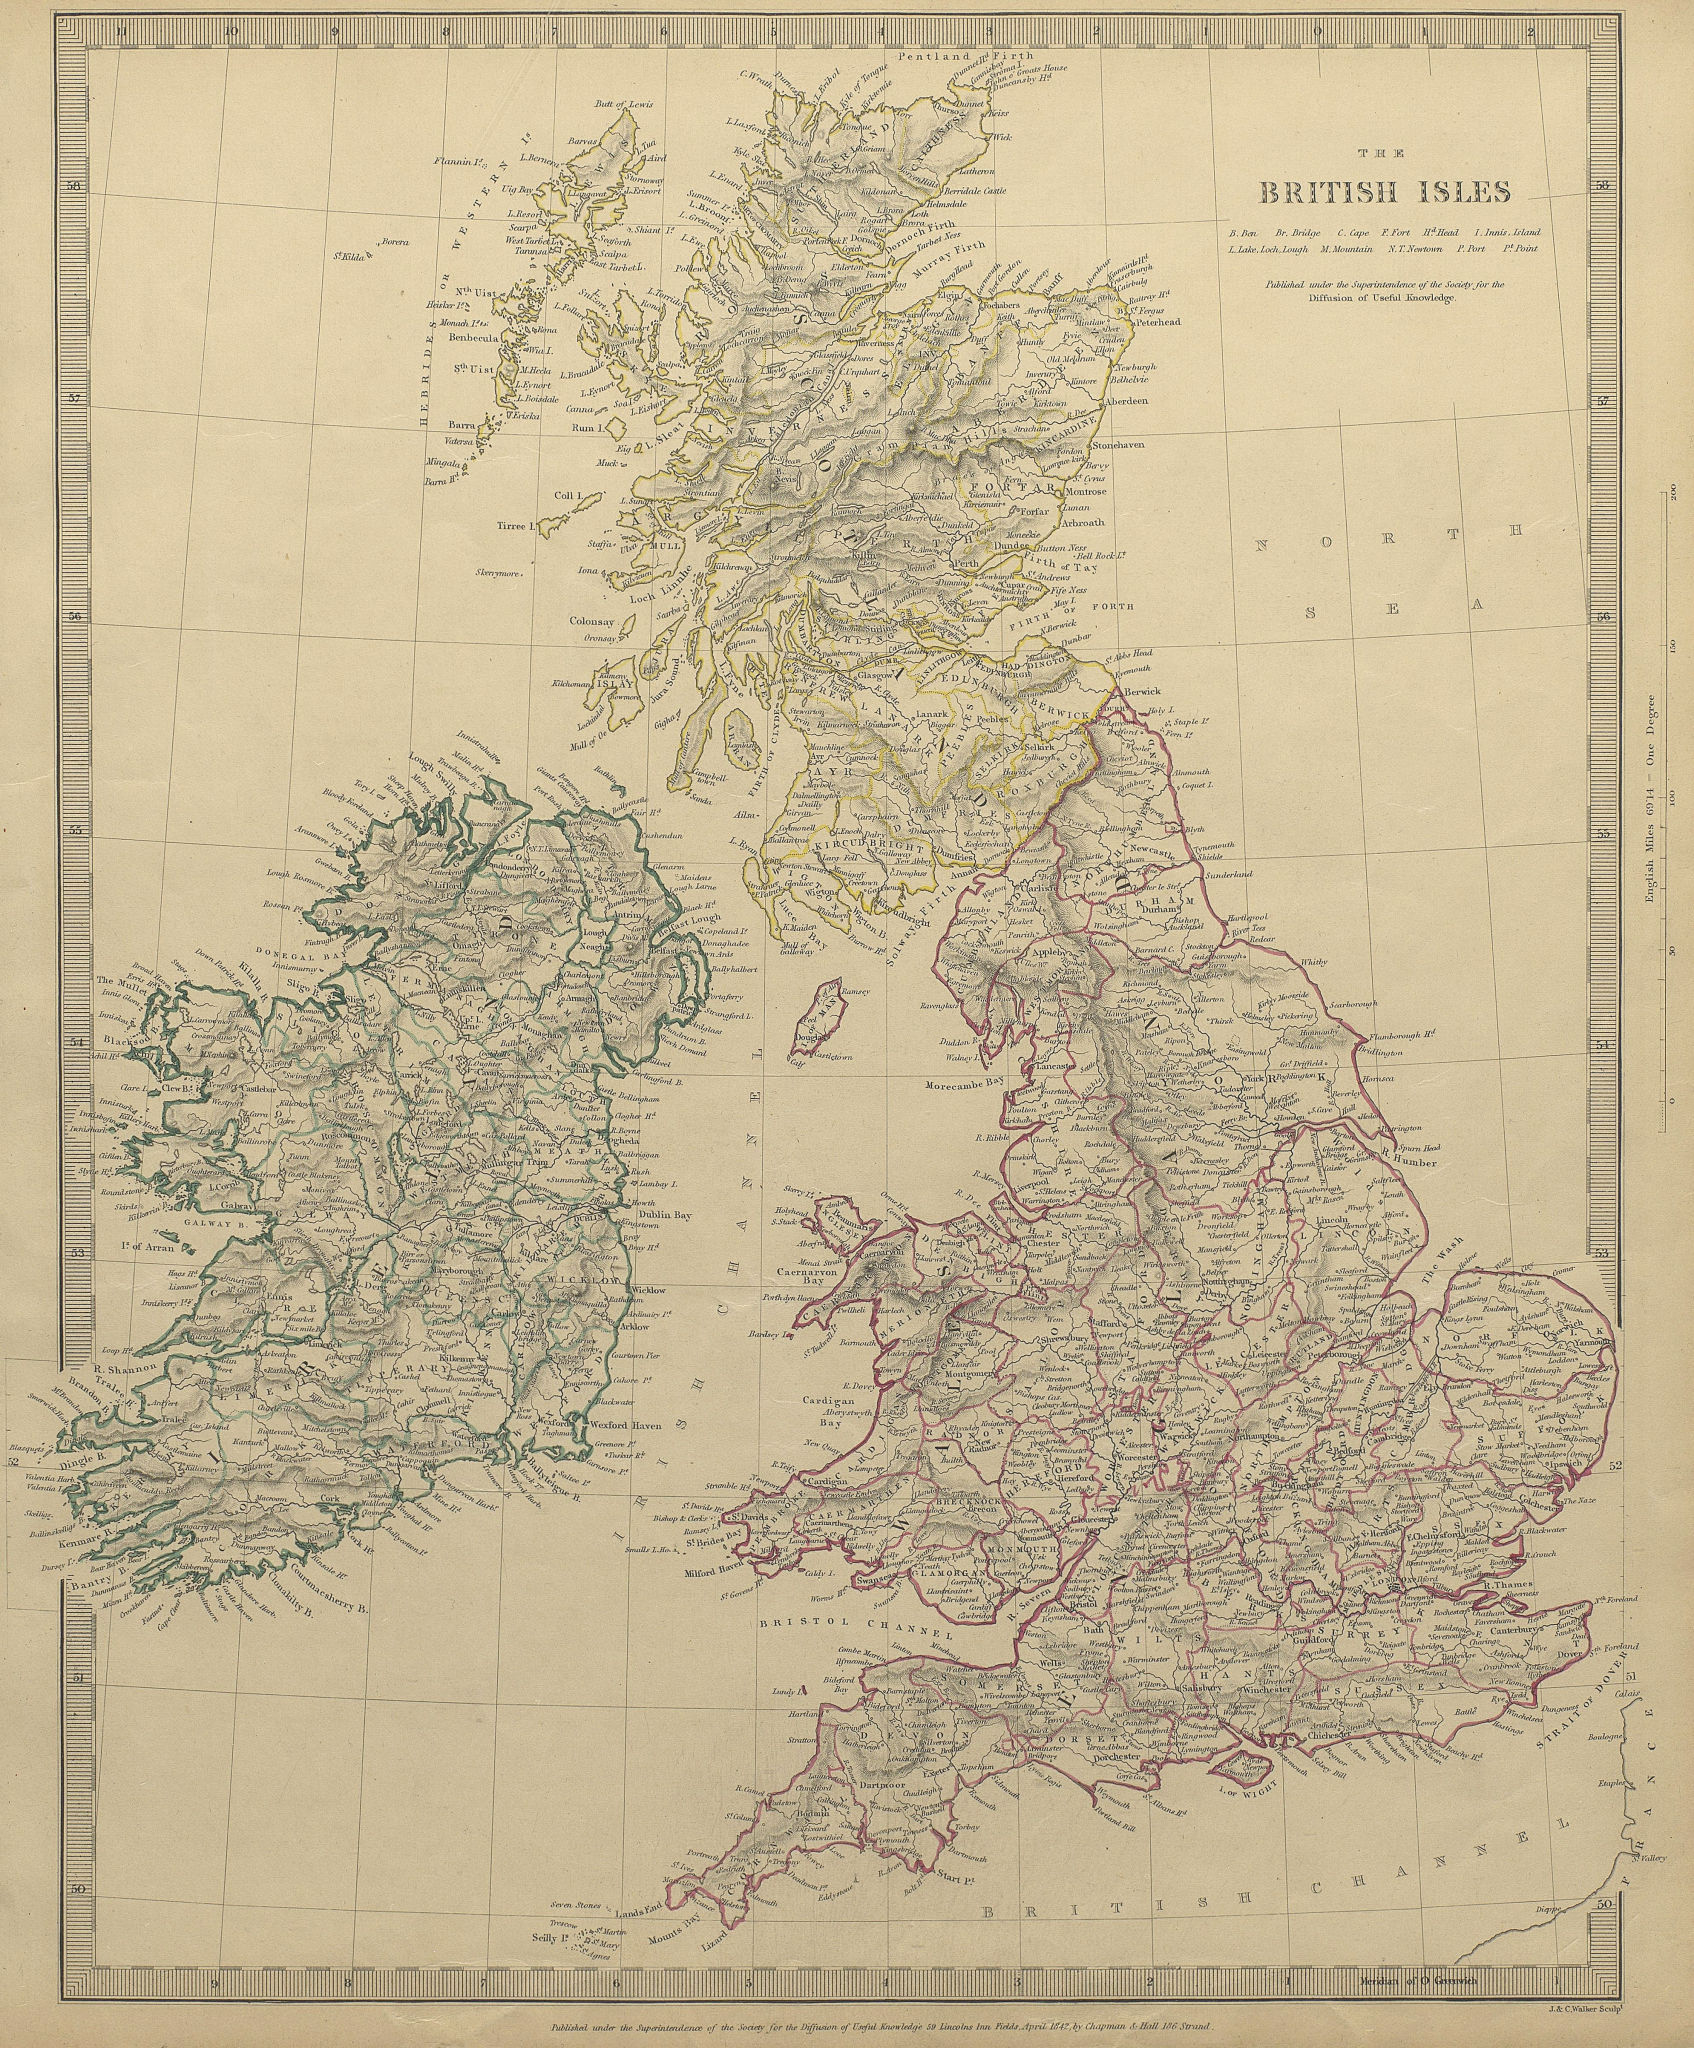 Associate Product BRITISH ISLES. United Kingdom & Ireland. Counties towns rivers. SDUK 1844 map